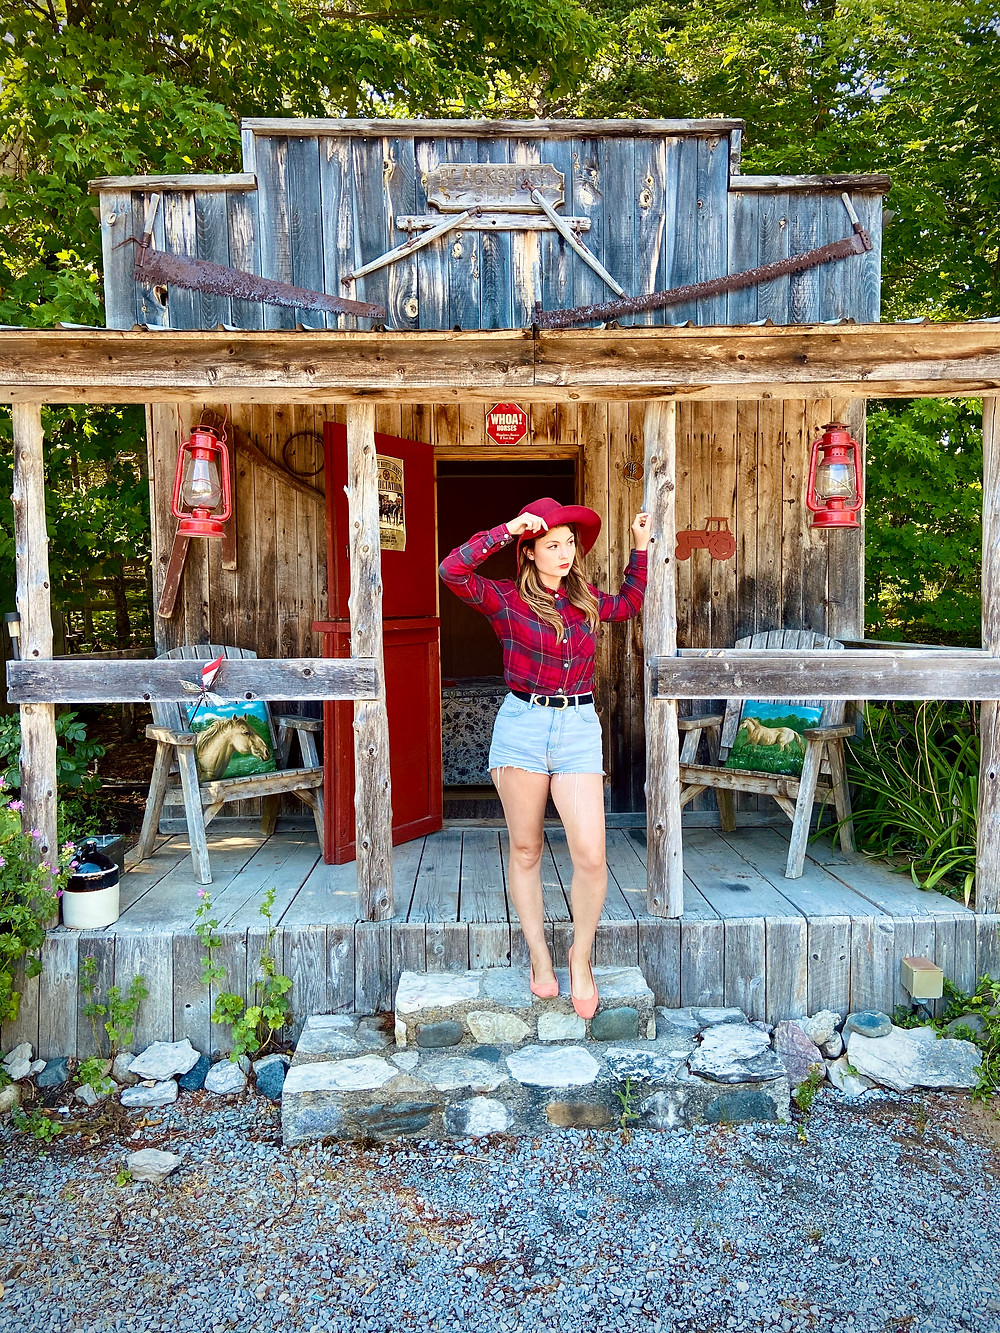 Rebecca standing in a plaid shirt and blue jean shorts holding her hat and standing outside a cowboy style wooden building. She is on a ranch and there are horse decorations in sight.